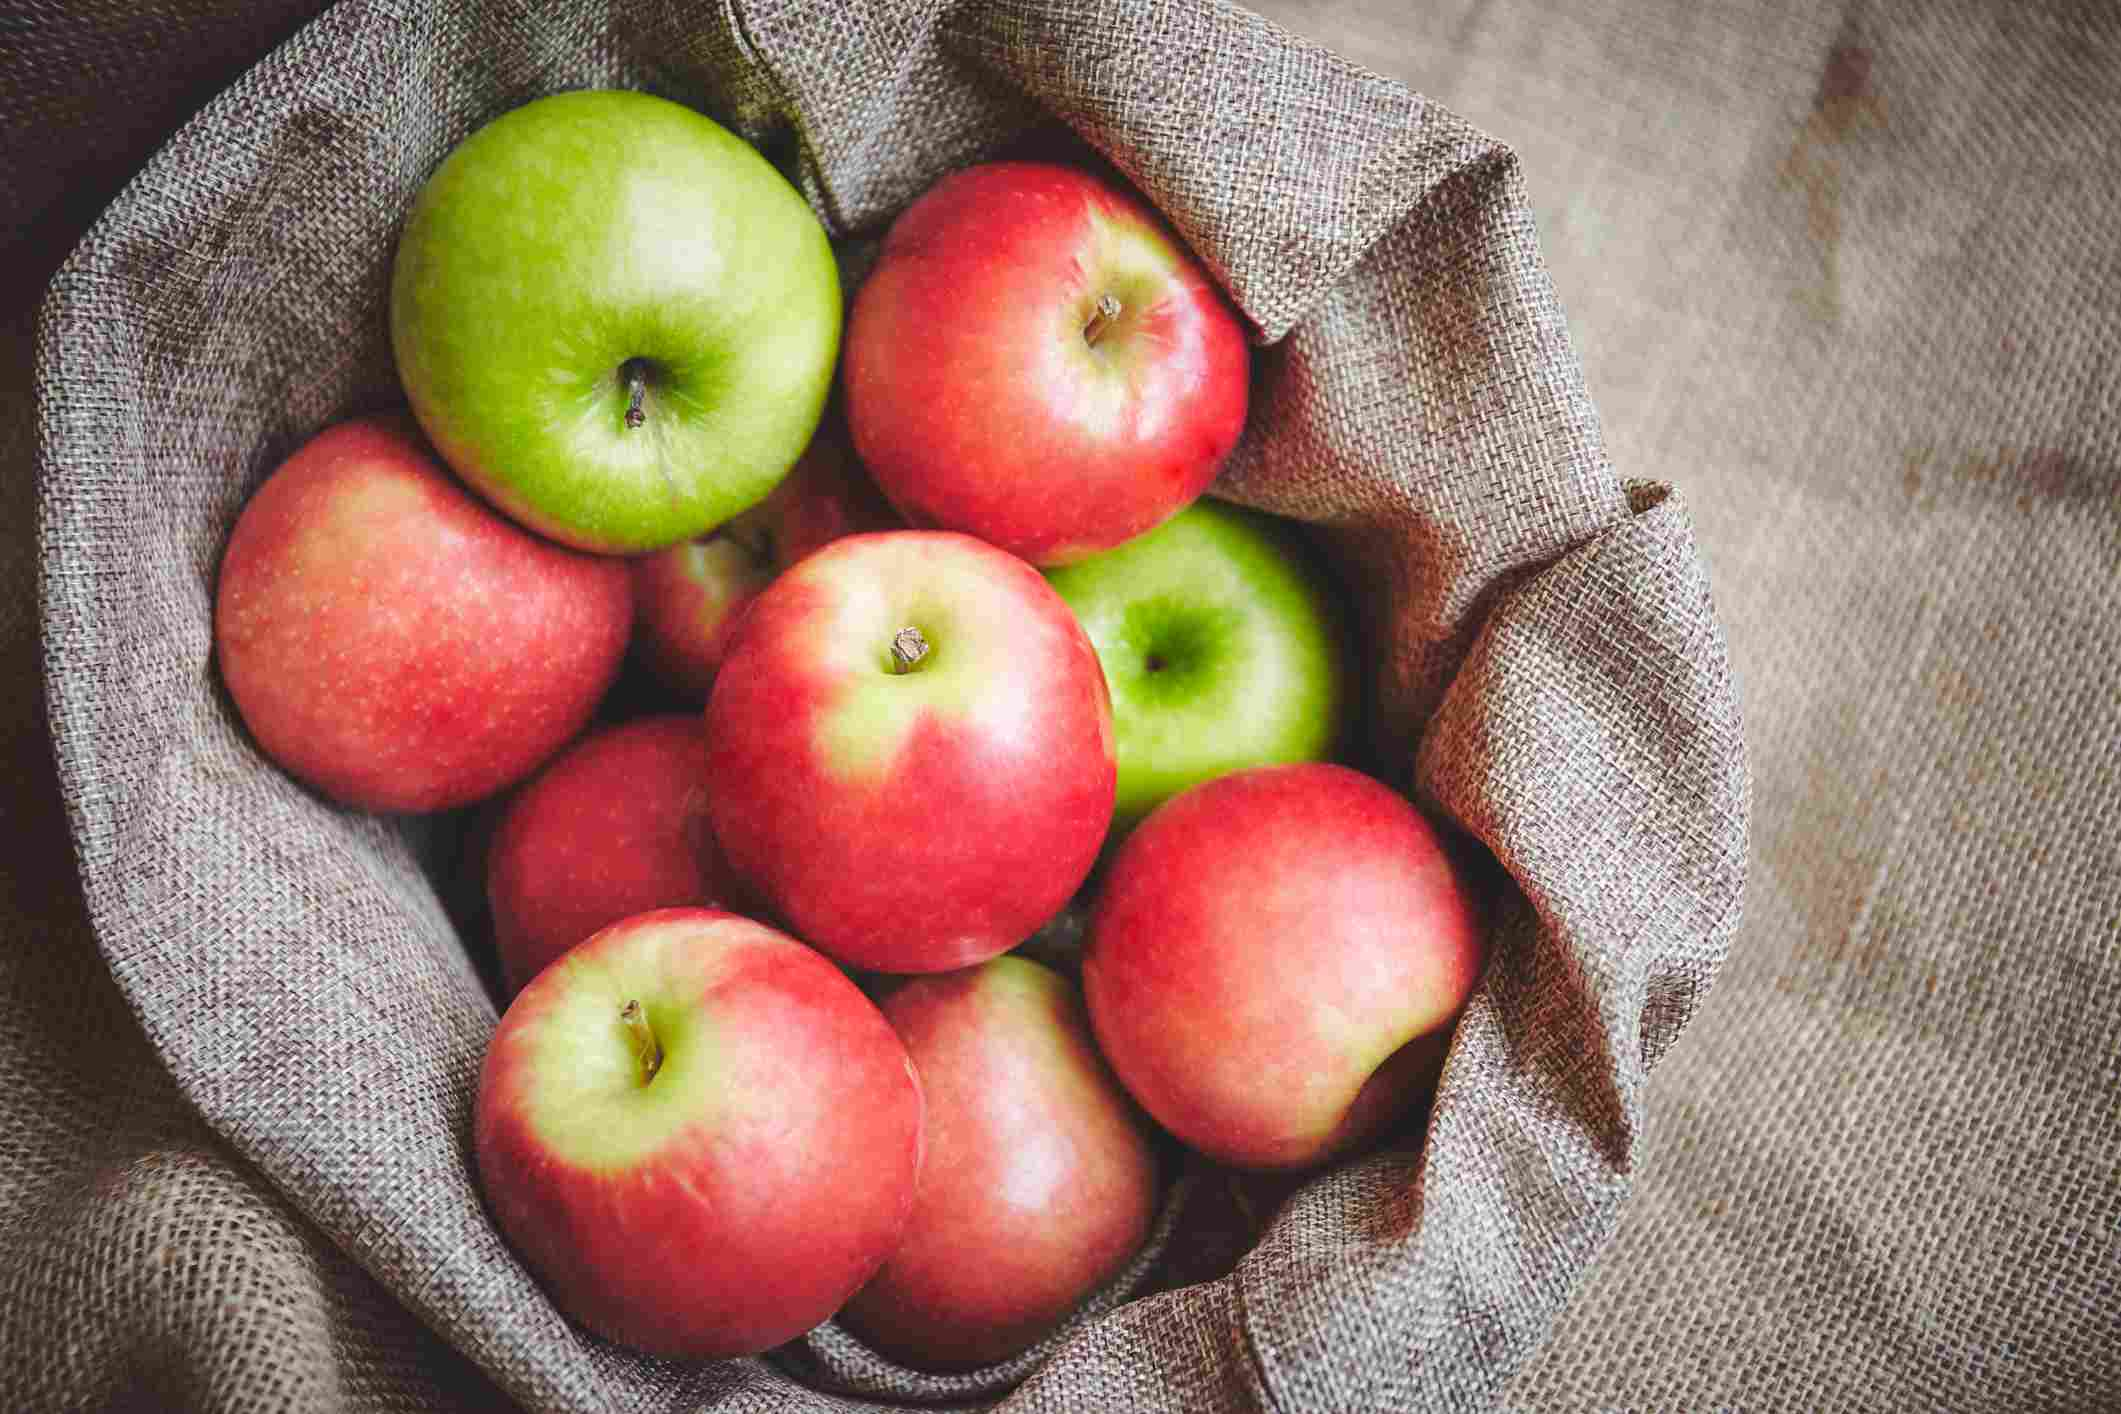 Green and red apples in a sack